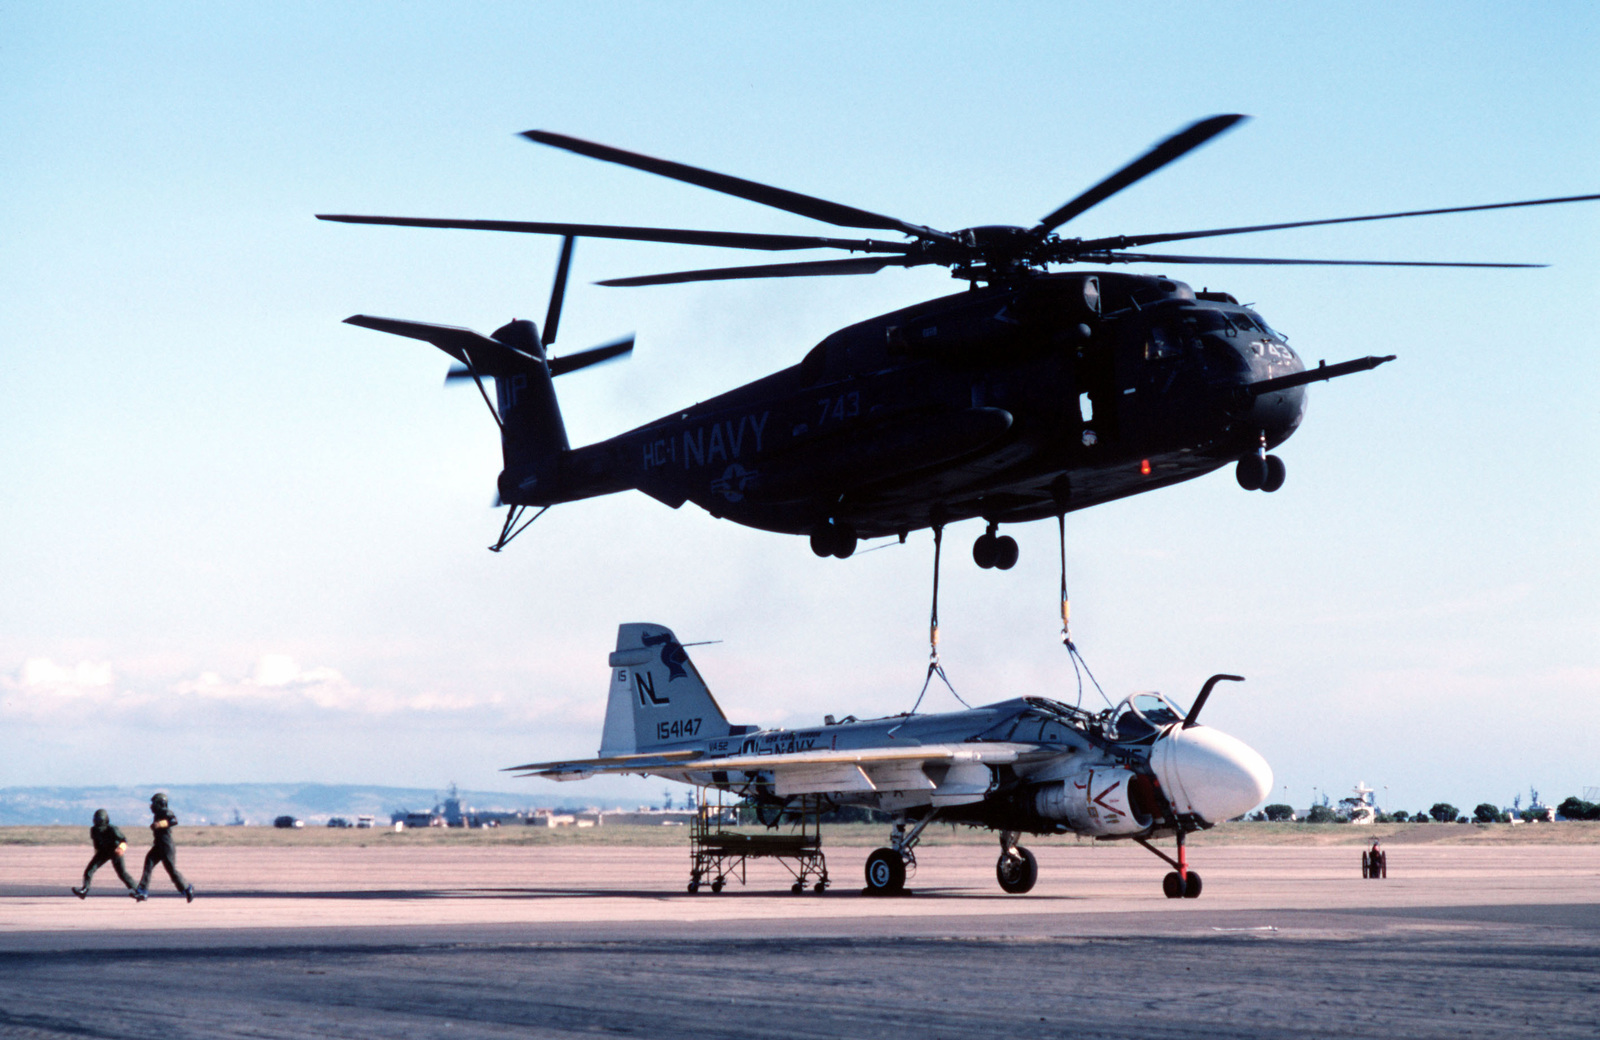 A CH-53E Super Stallion helicopter from Helicopter Combat Support Squadron 1 (HC-1) lifts a damaged Attack Squadron 52 (VA-52) A-6E Intruder aircraft. The helicopter will carry the aircraft to the Naval Air Rework Facility, Alameda, California, for repairs. The Intruder was damaged when a hydraulic failure forced it to land with its landing gear retracted